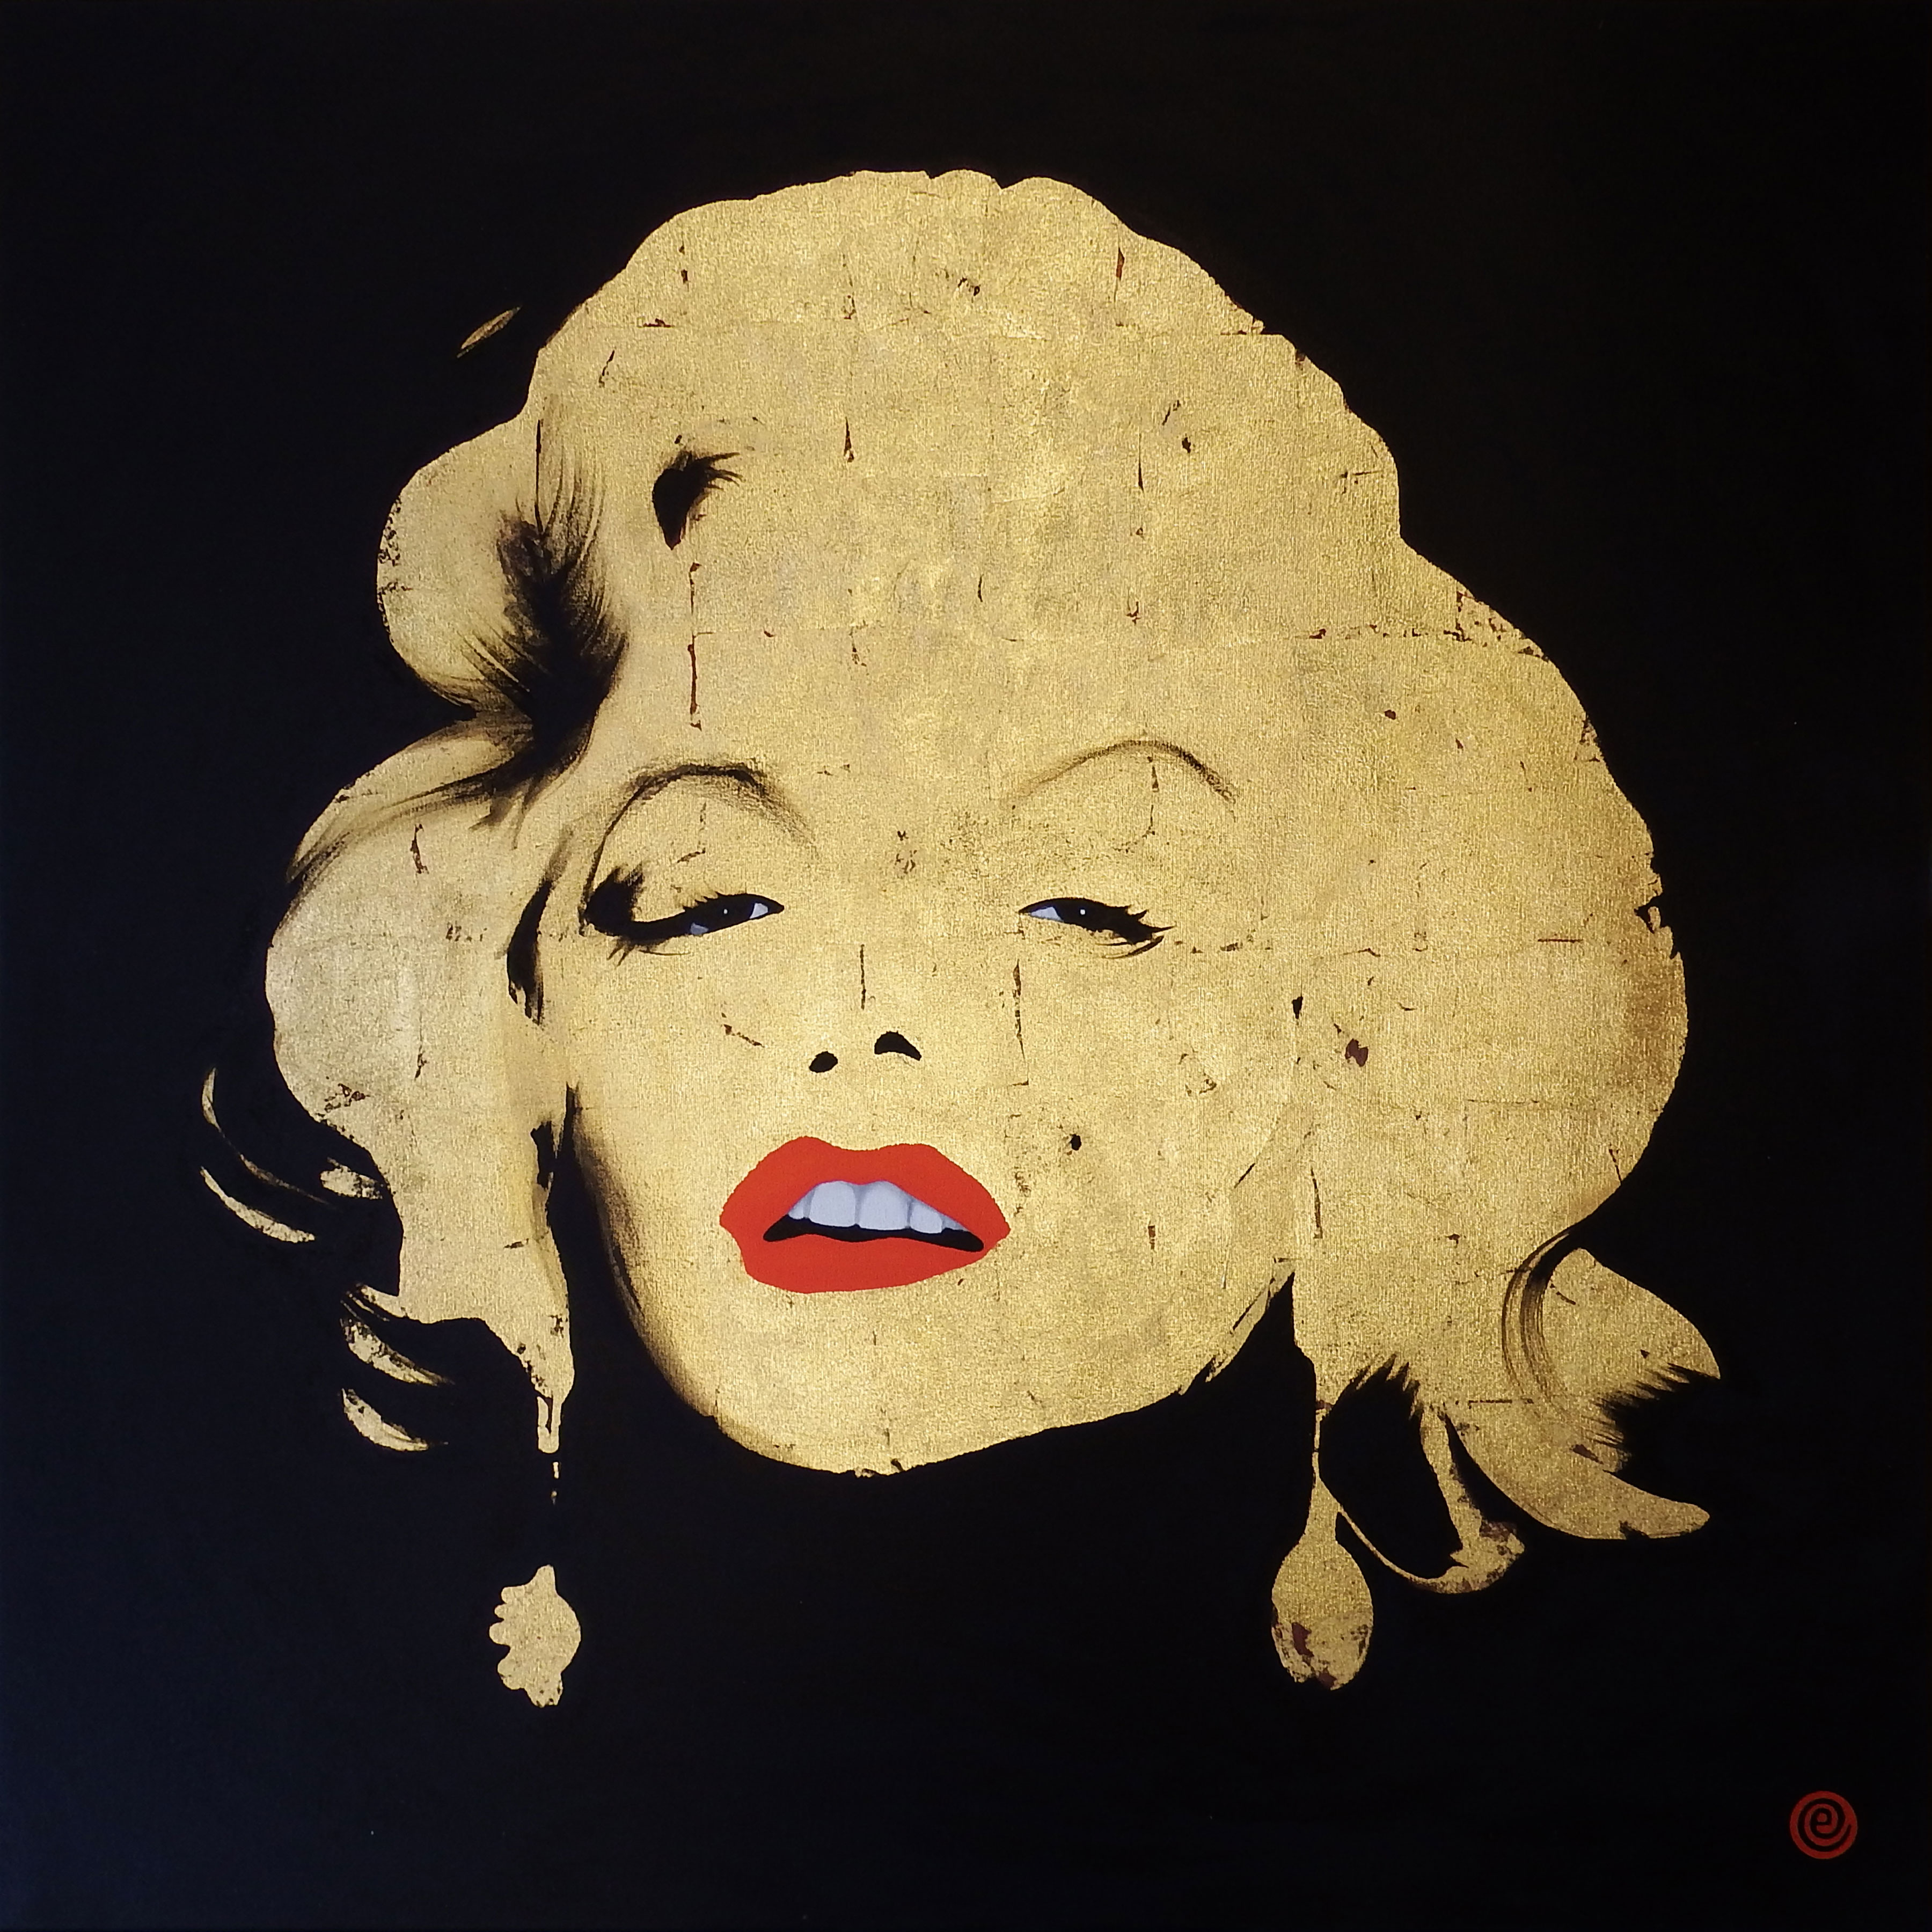 Oil on canvas with 24 karat gold leaf portrait of Marilyn Monroe